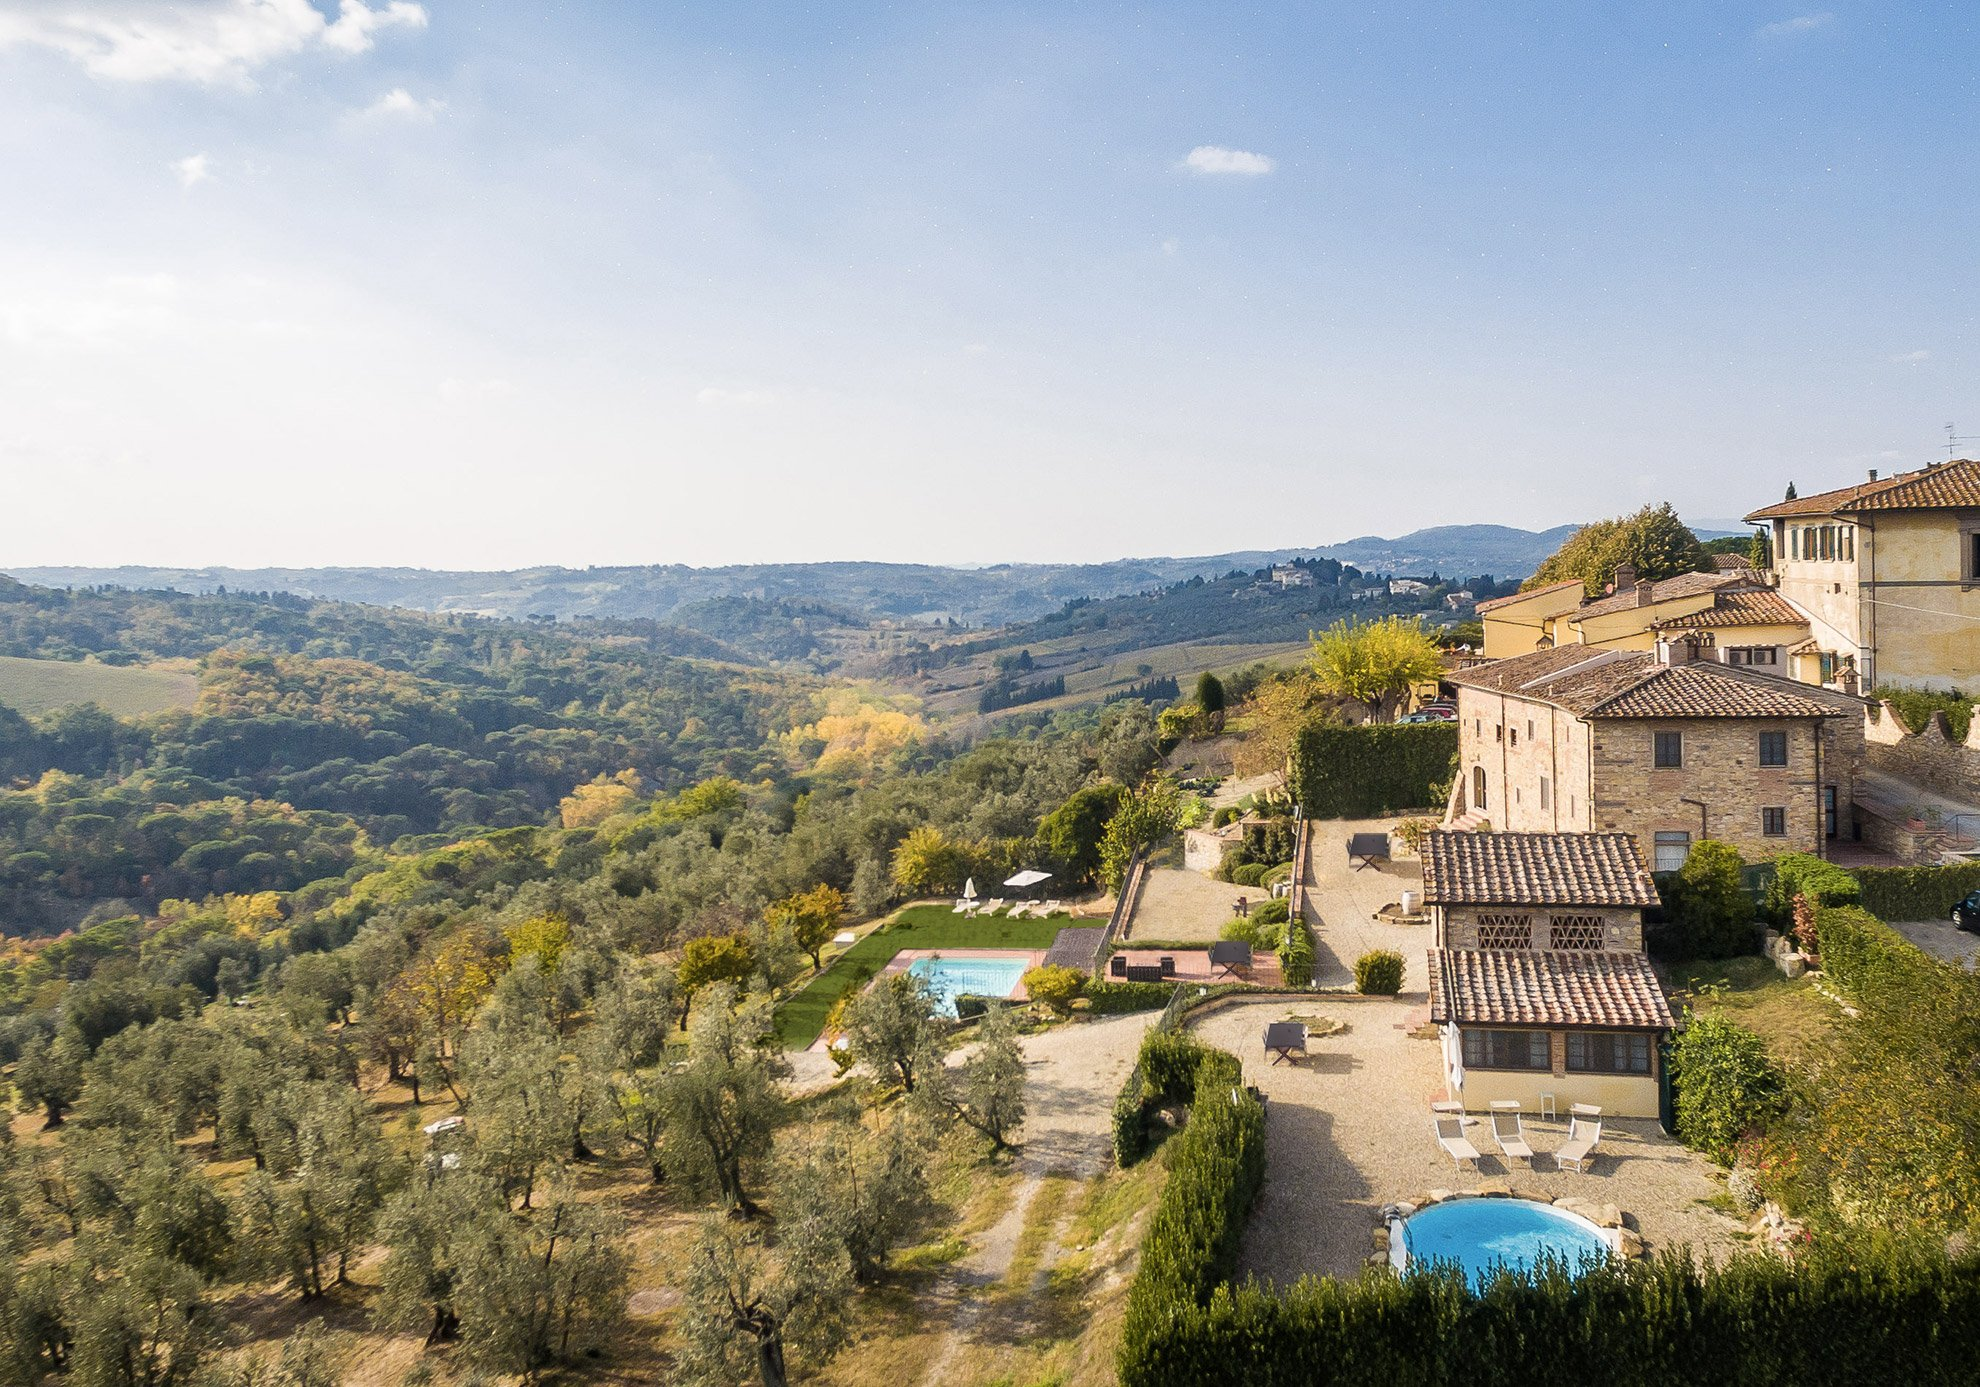 Aerial view of the Tuscan countryside and Relais Villa Olmo